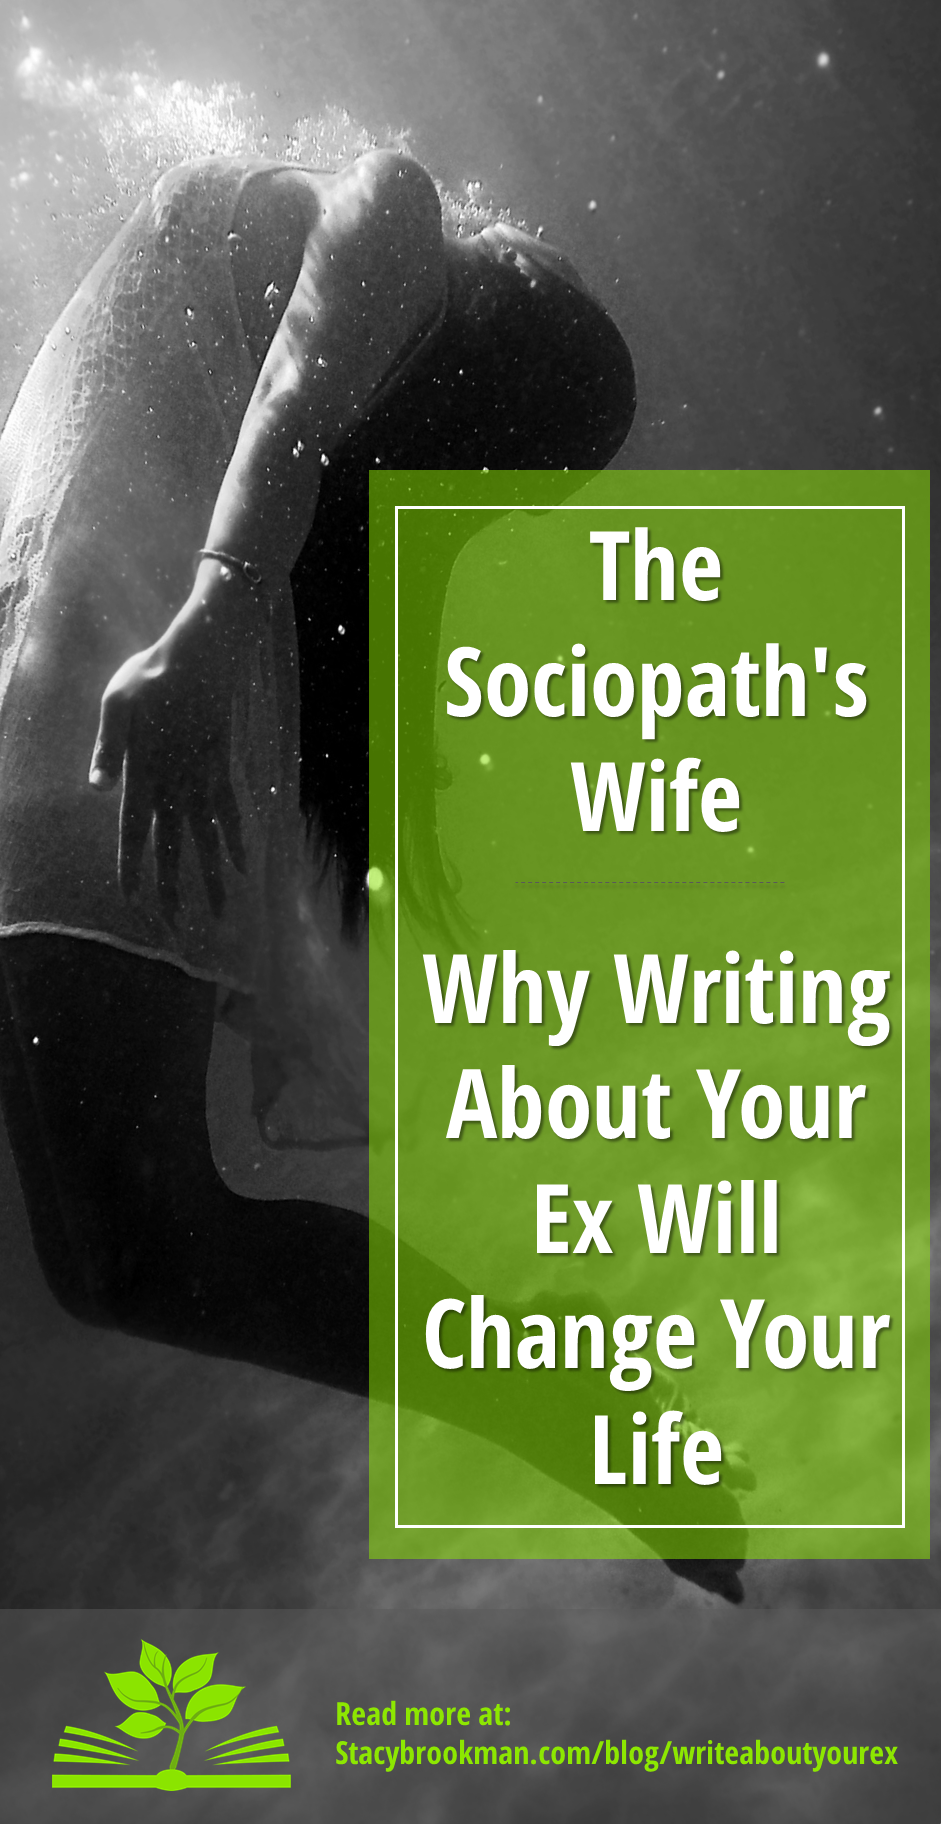 Now that you're out, you probably want to run and never look back. If you want to truly feel free, you need to travel back to that relationship with a pen and paper. Writing about your ex can change your life. Trust me. It will be worth it.